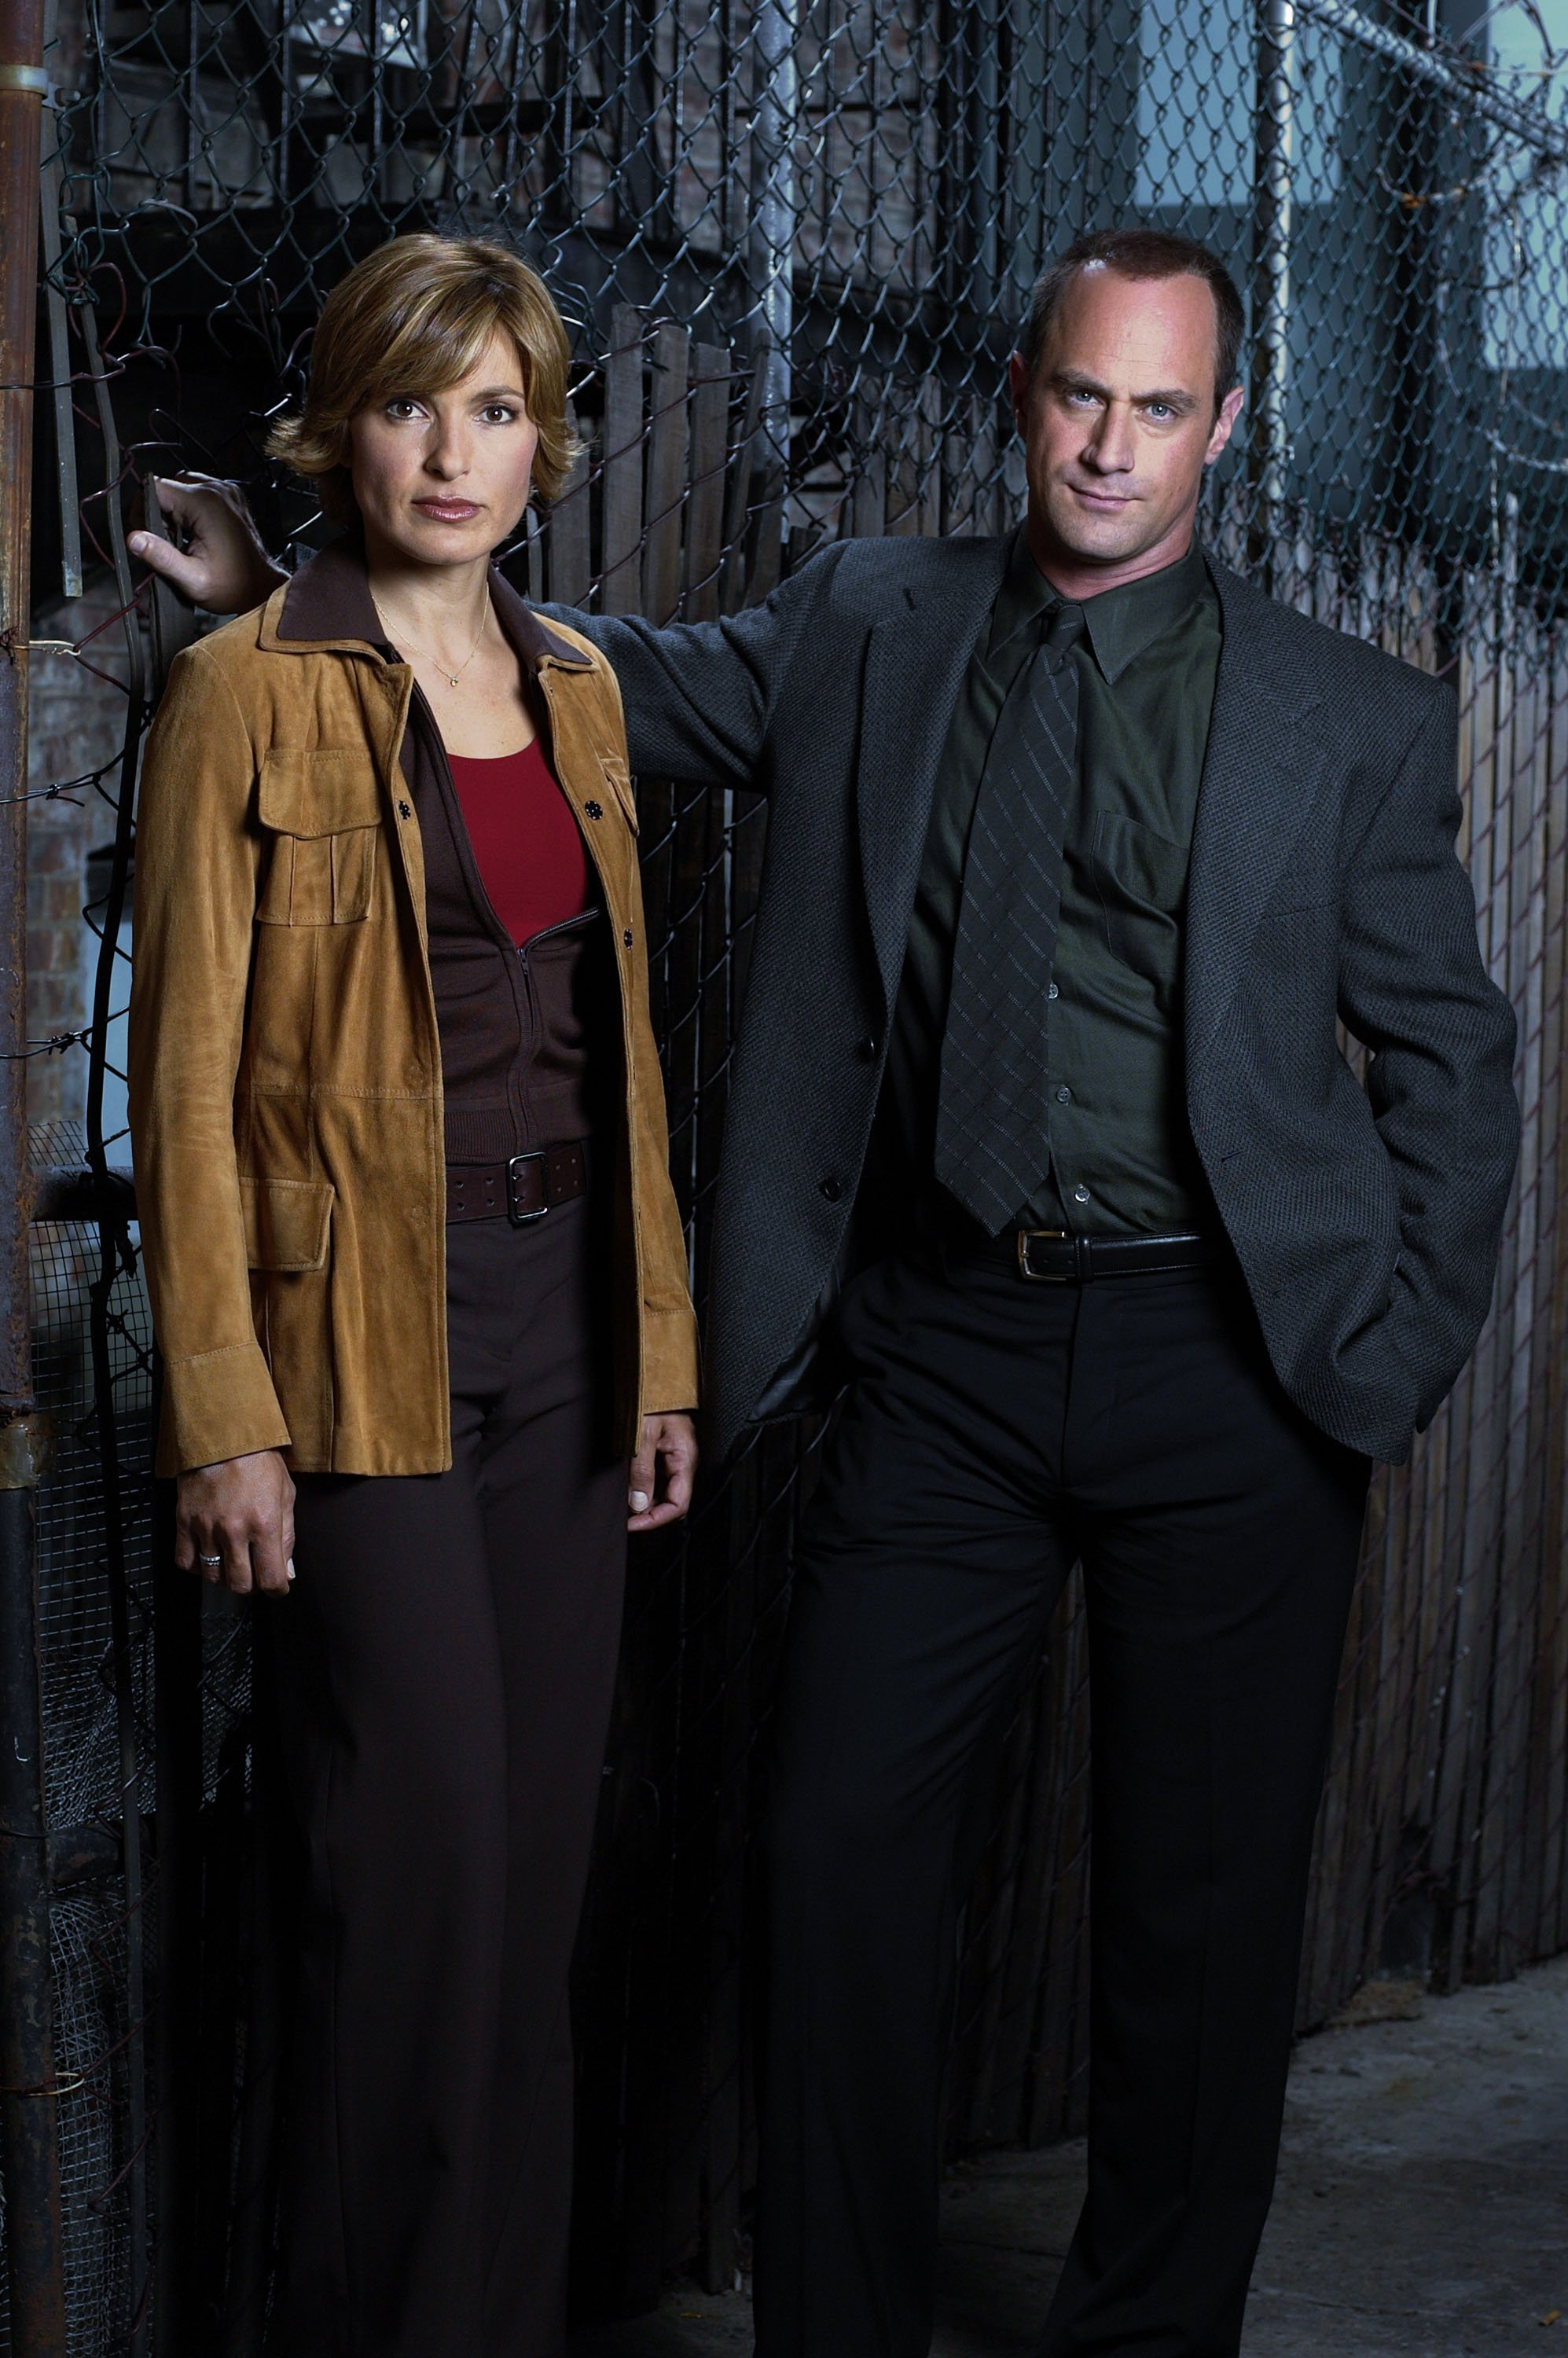 """Mariska Hargitay as Detective Olivia Benson, Christopher Meloni as Detective Elliot Stabler on the set of """"Law & Order: Special Victims Unit"""" 